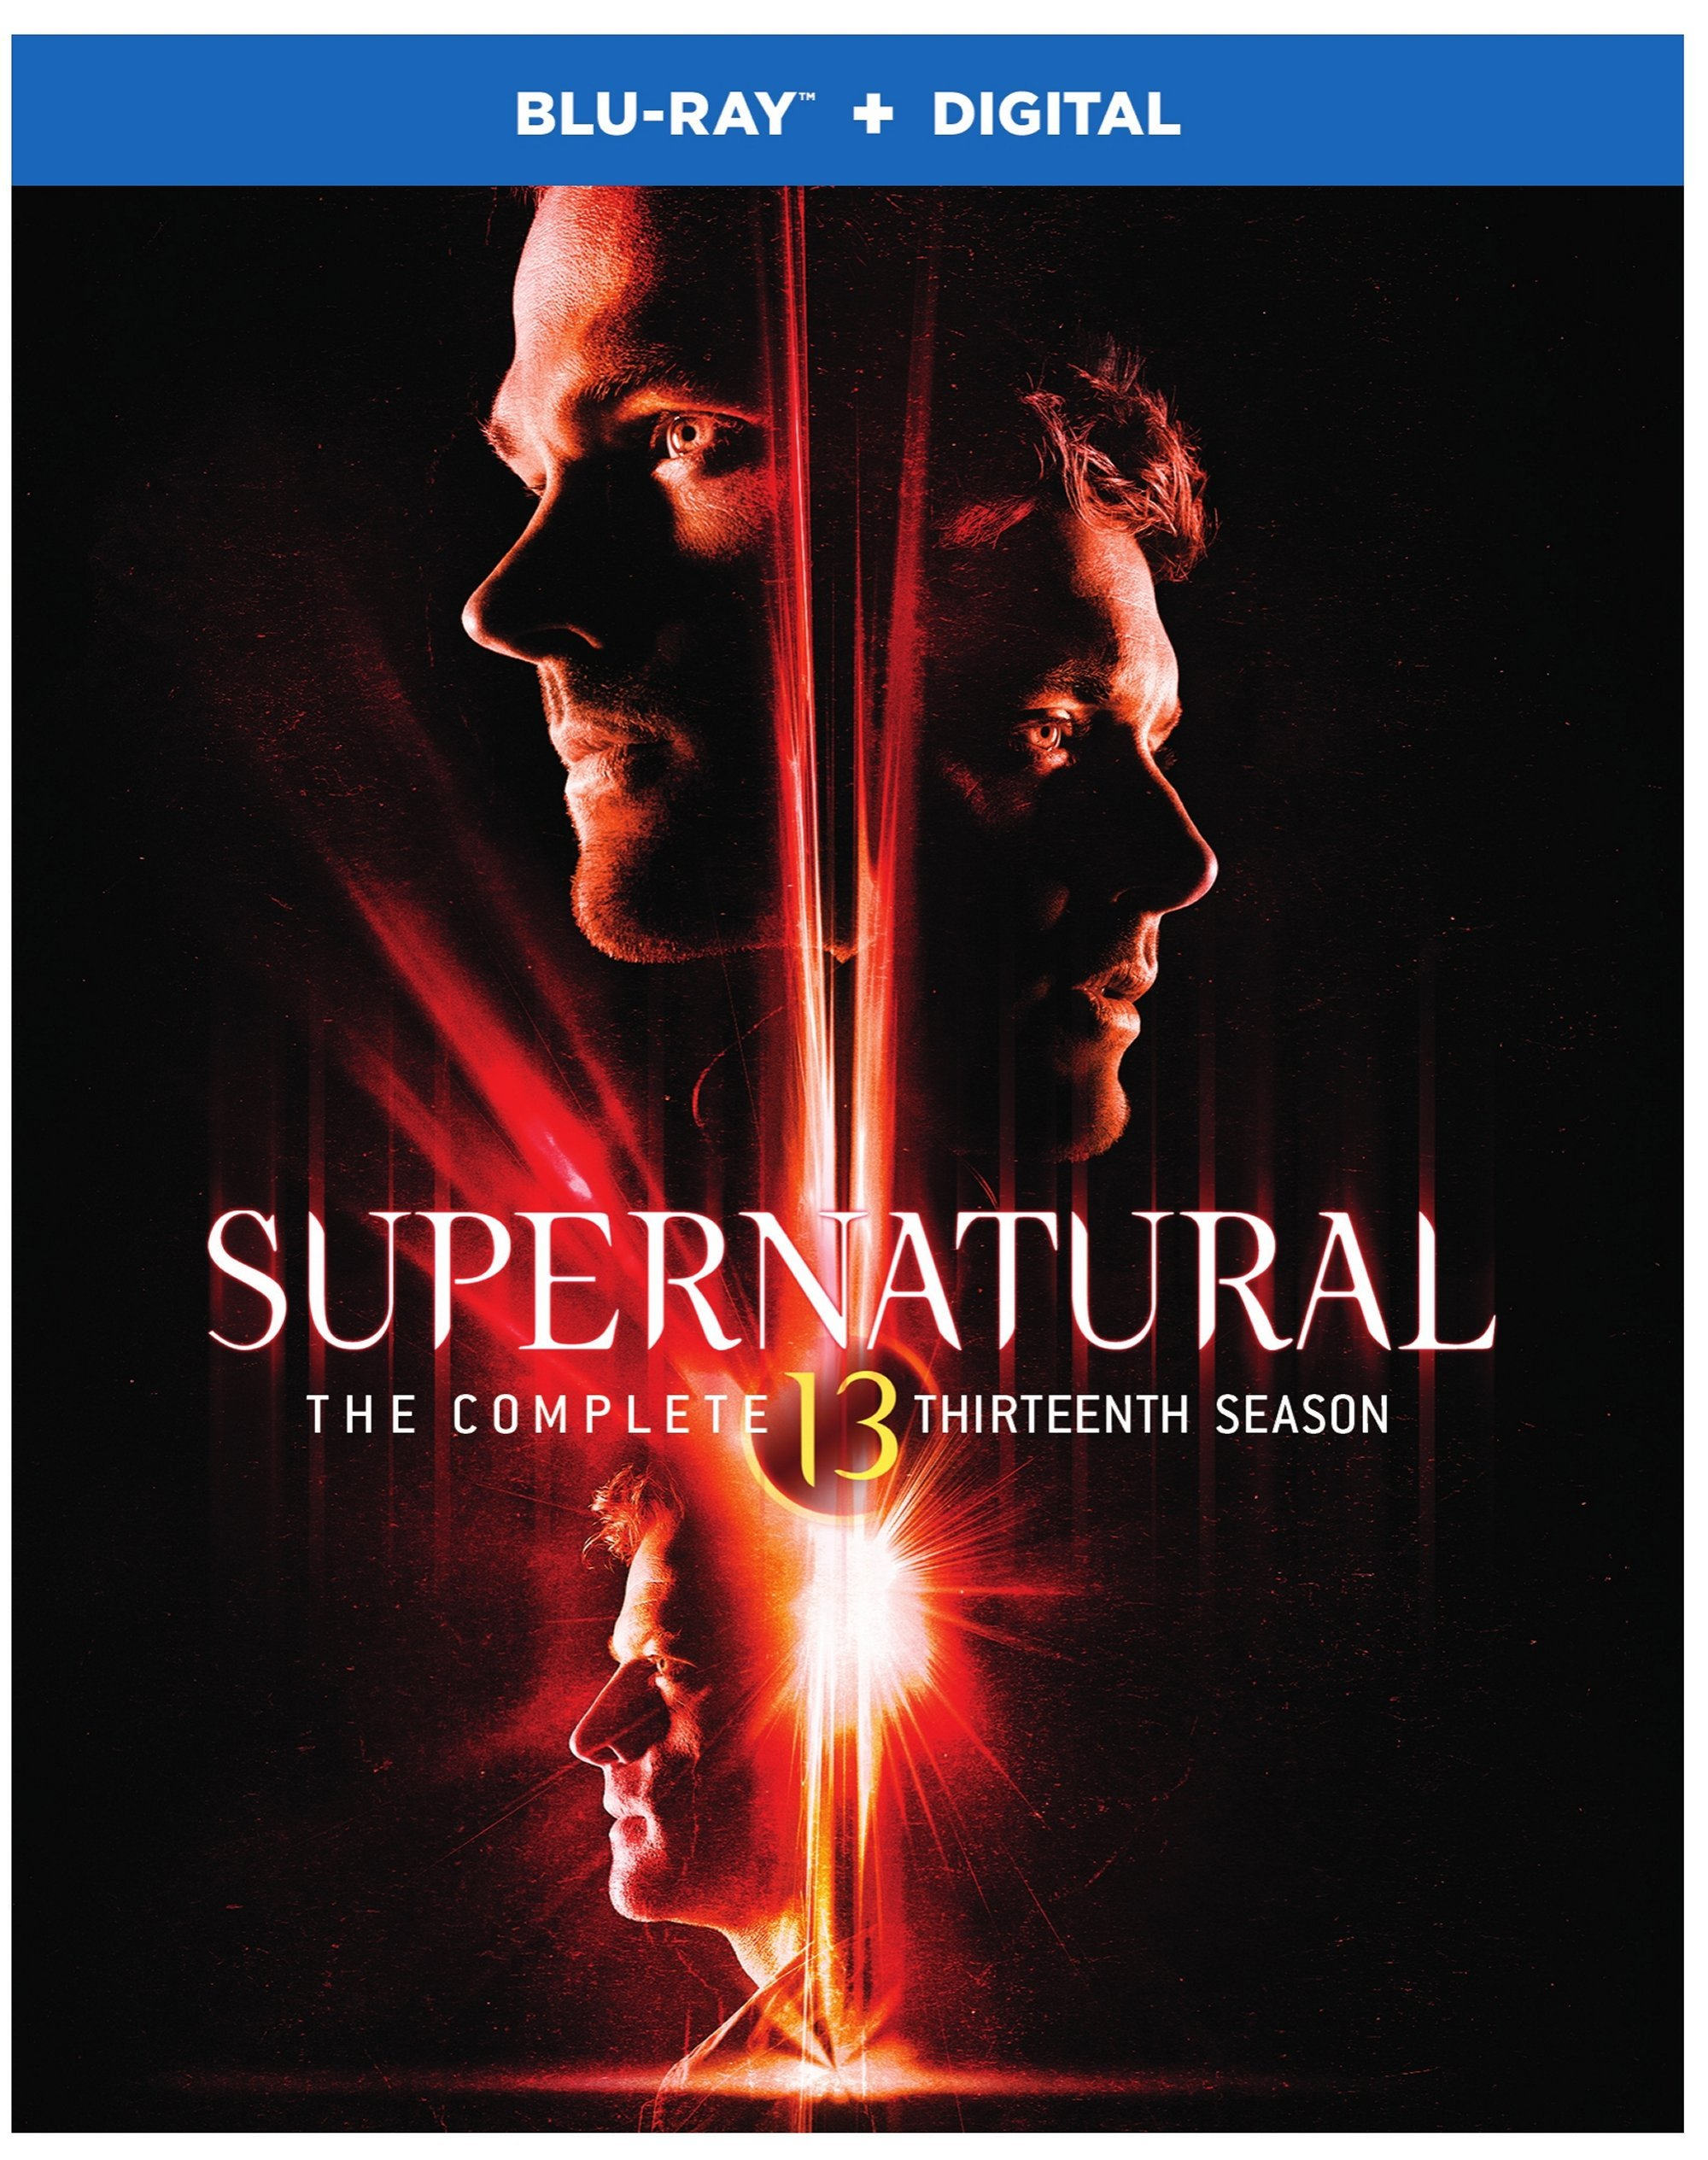 Blu-ray : Supernatural: The Complete Thirteenth Season (Boxed Set, Dubbed, Dolby, AC-3, Digital Copy)